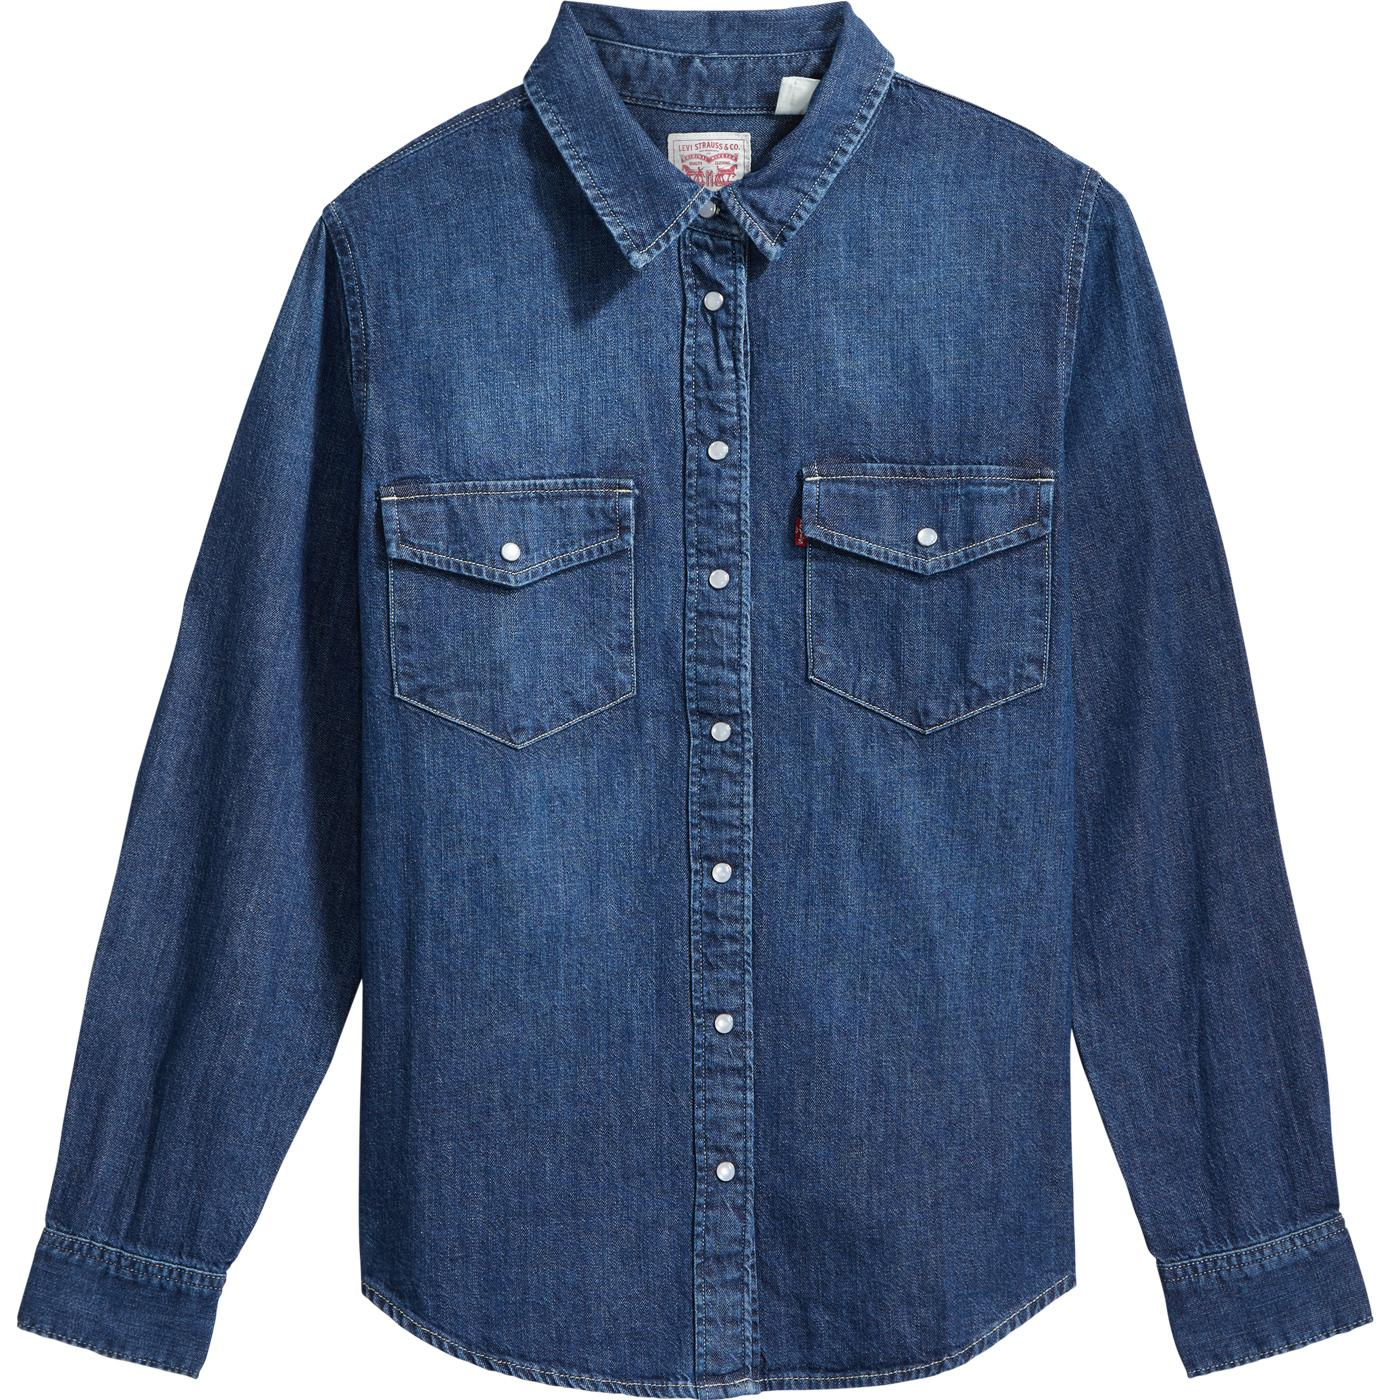 LEVI'S Women's Essential Western Shirt AIR SPACE 2